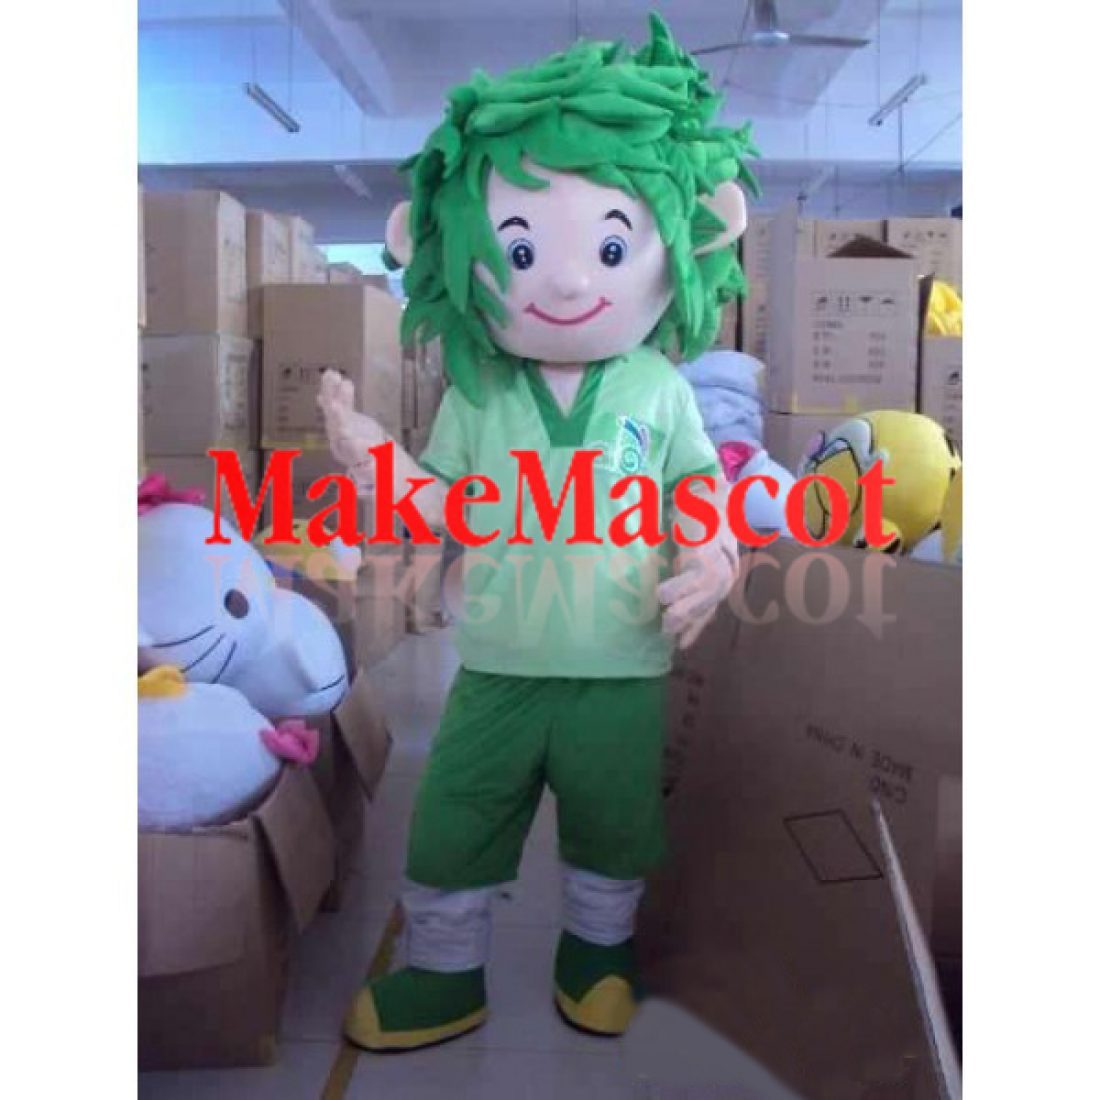 Football Player Mascot With Green Hair All Messed Up Mascot Costume In 2020 Mascot Costumes Football Players Mascot